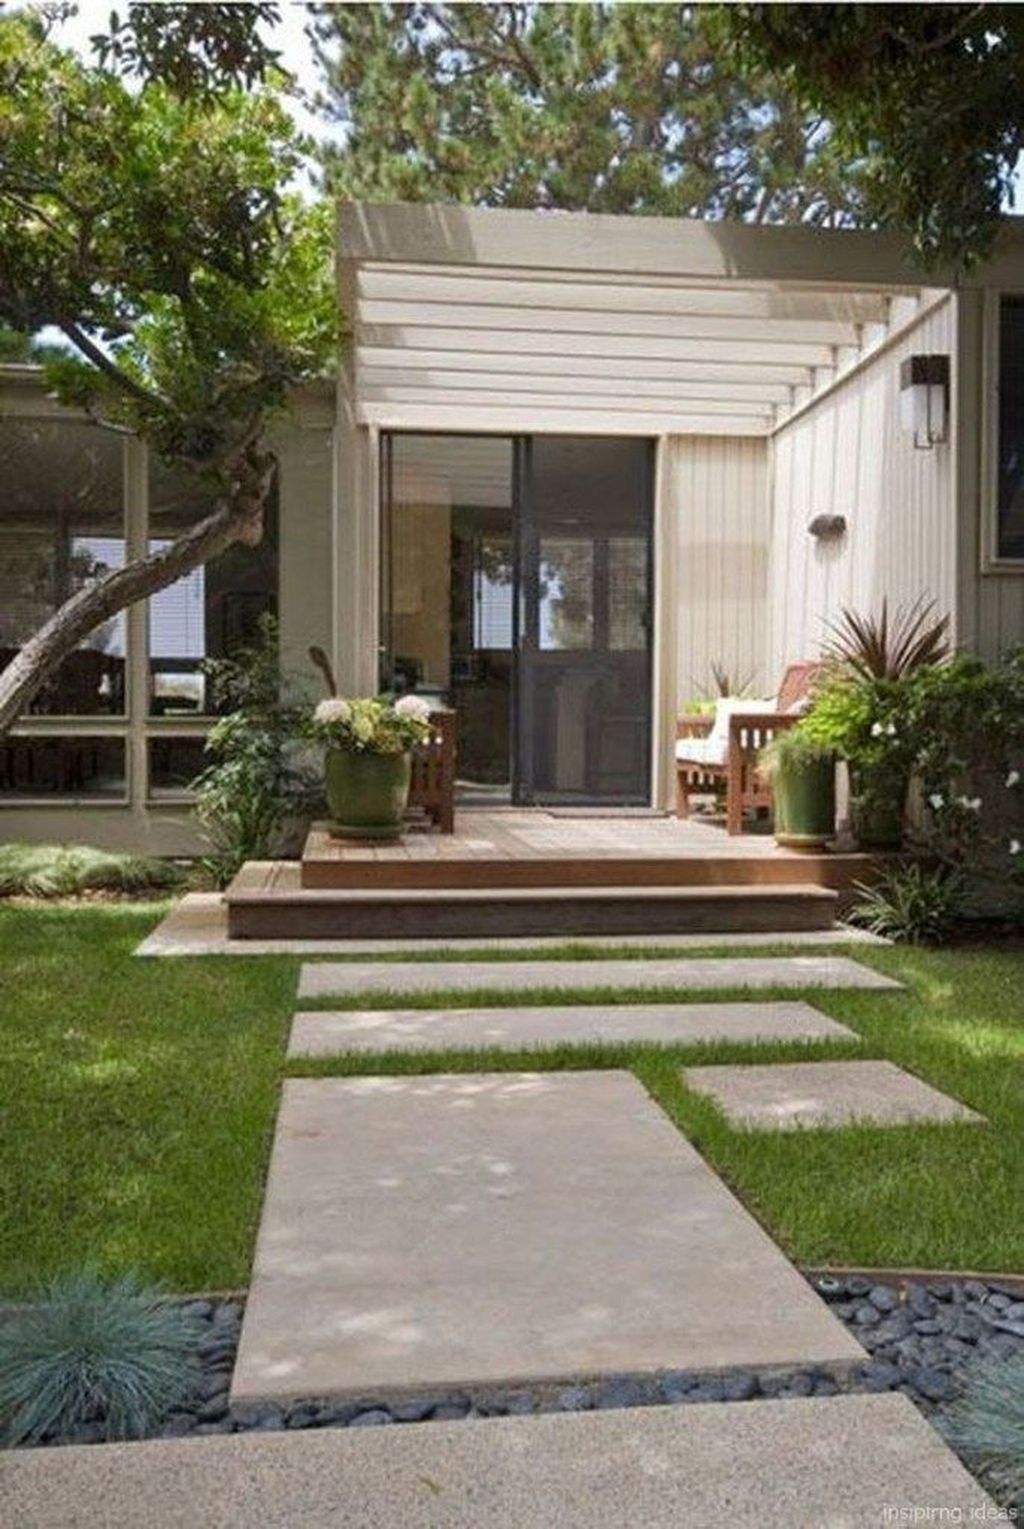 The Best Minimalist Garden Design Ideas You Have To Try 28